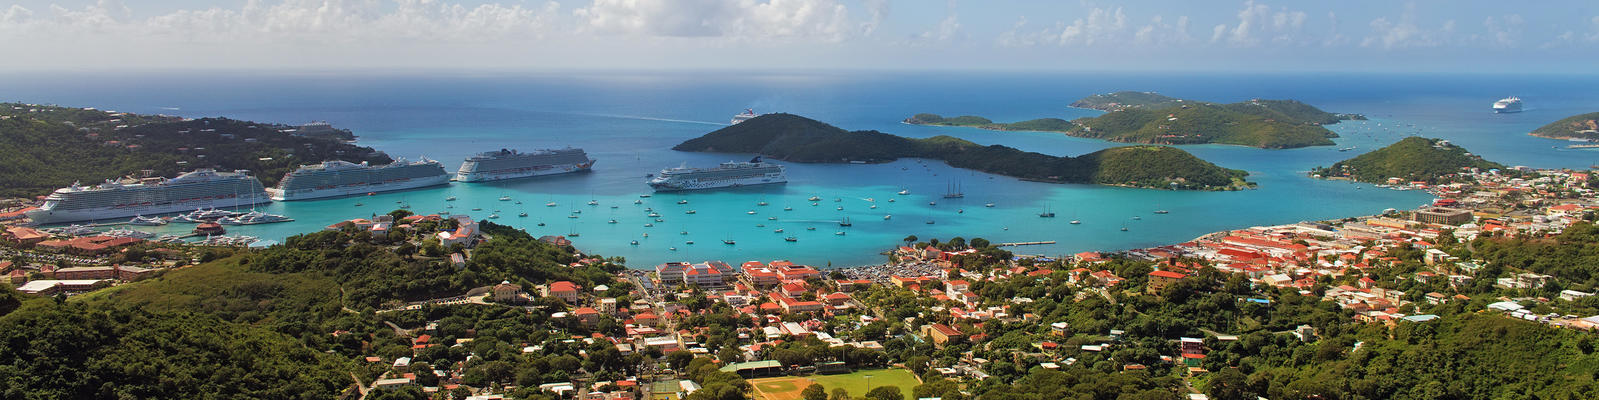 Best Eastern Caribbean Shore Excursions Cruise Critic